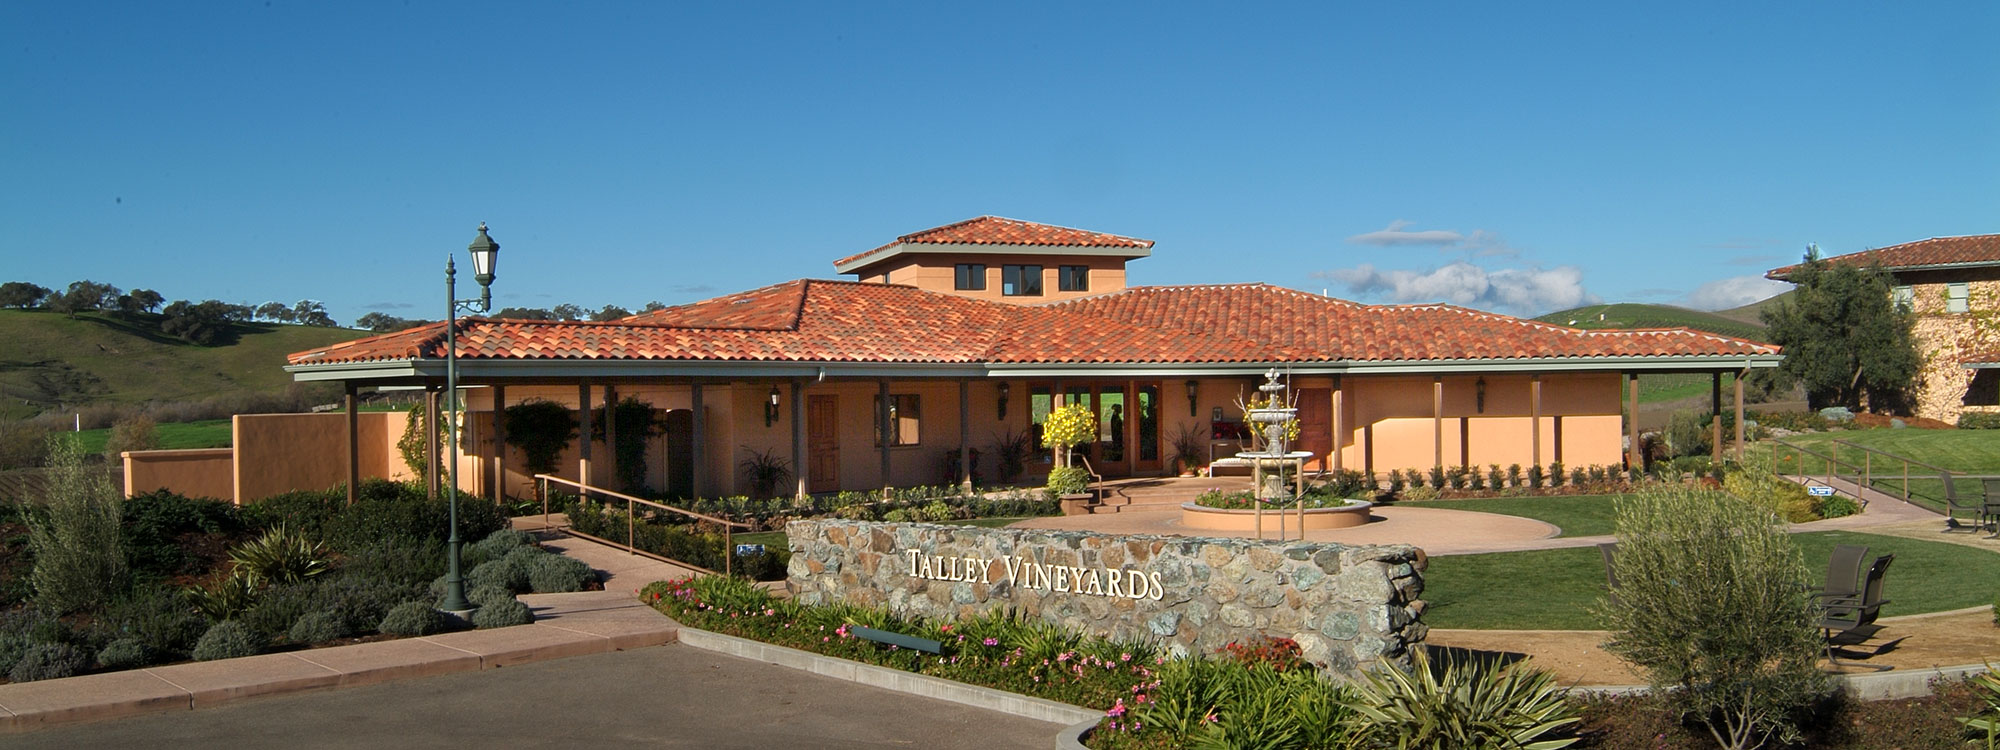 Winery Contractor and Builder - JW Design & Construction